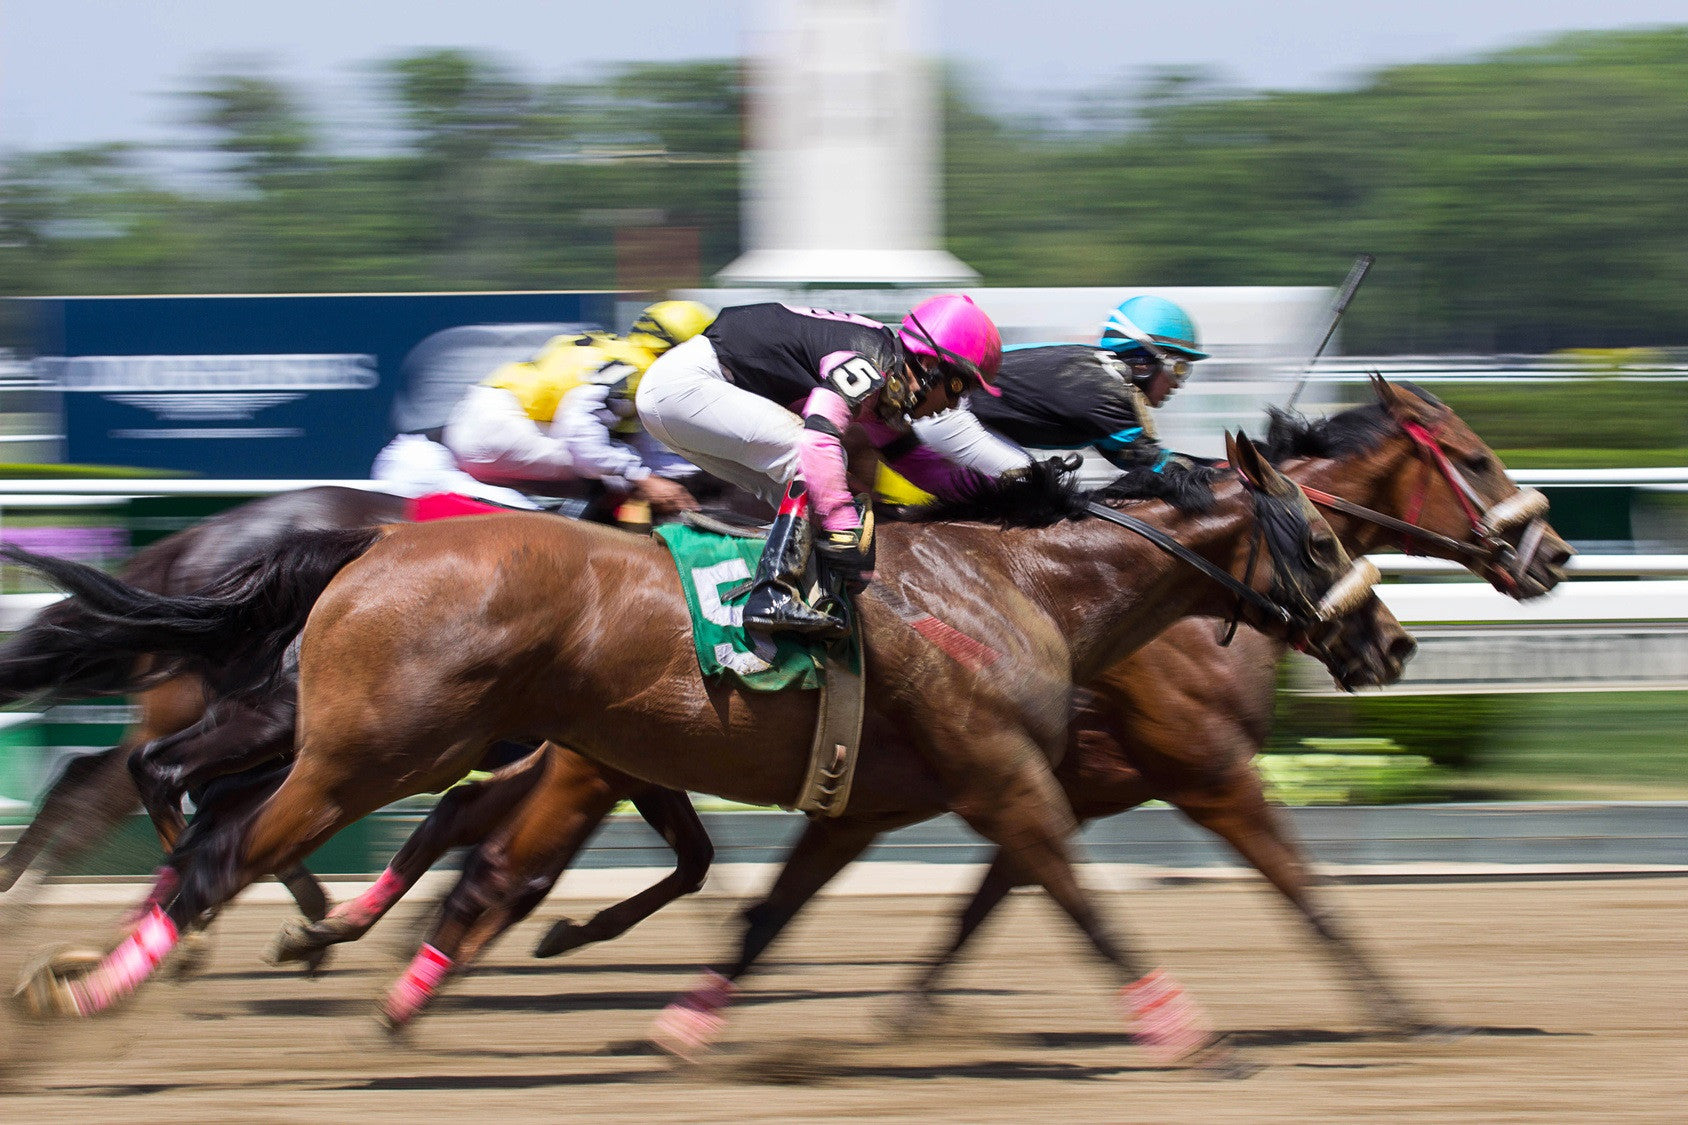 All Access Photography Class at Arlington Park Race Track  (5/13/2017) 6:00am-10am - Classes-Events - Helix Camera & Video - Helix Camera